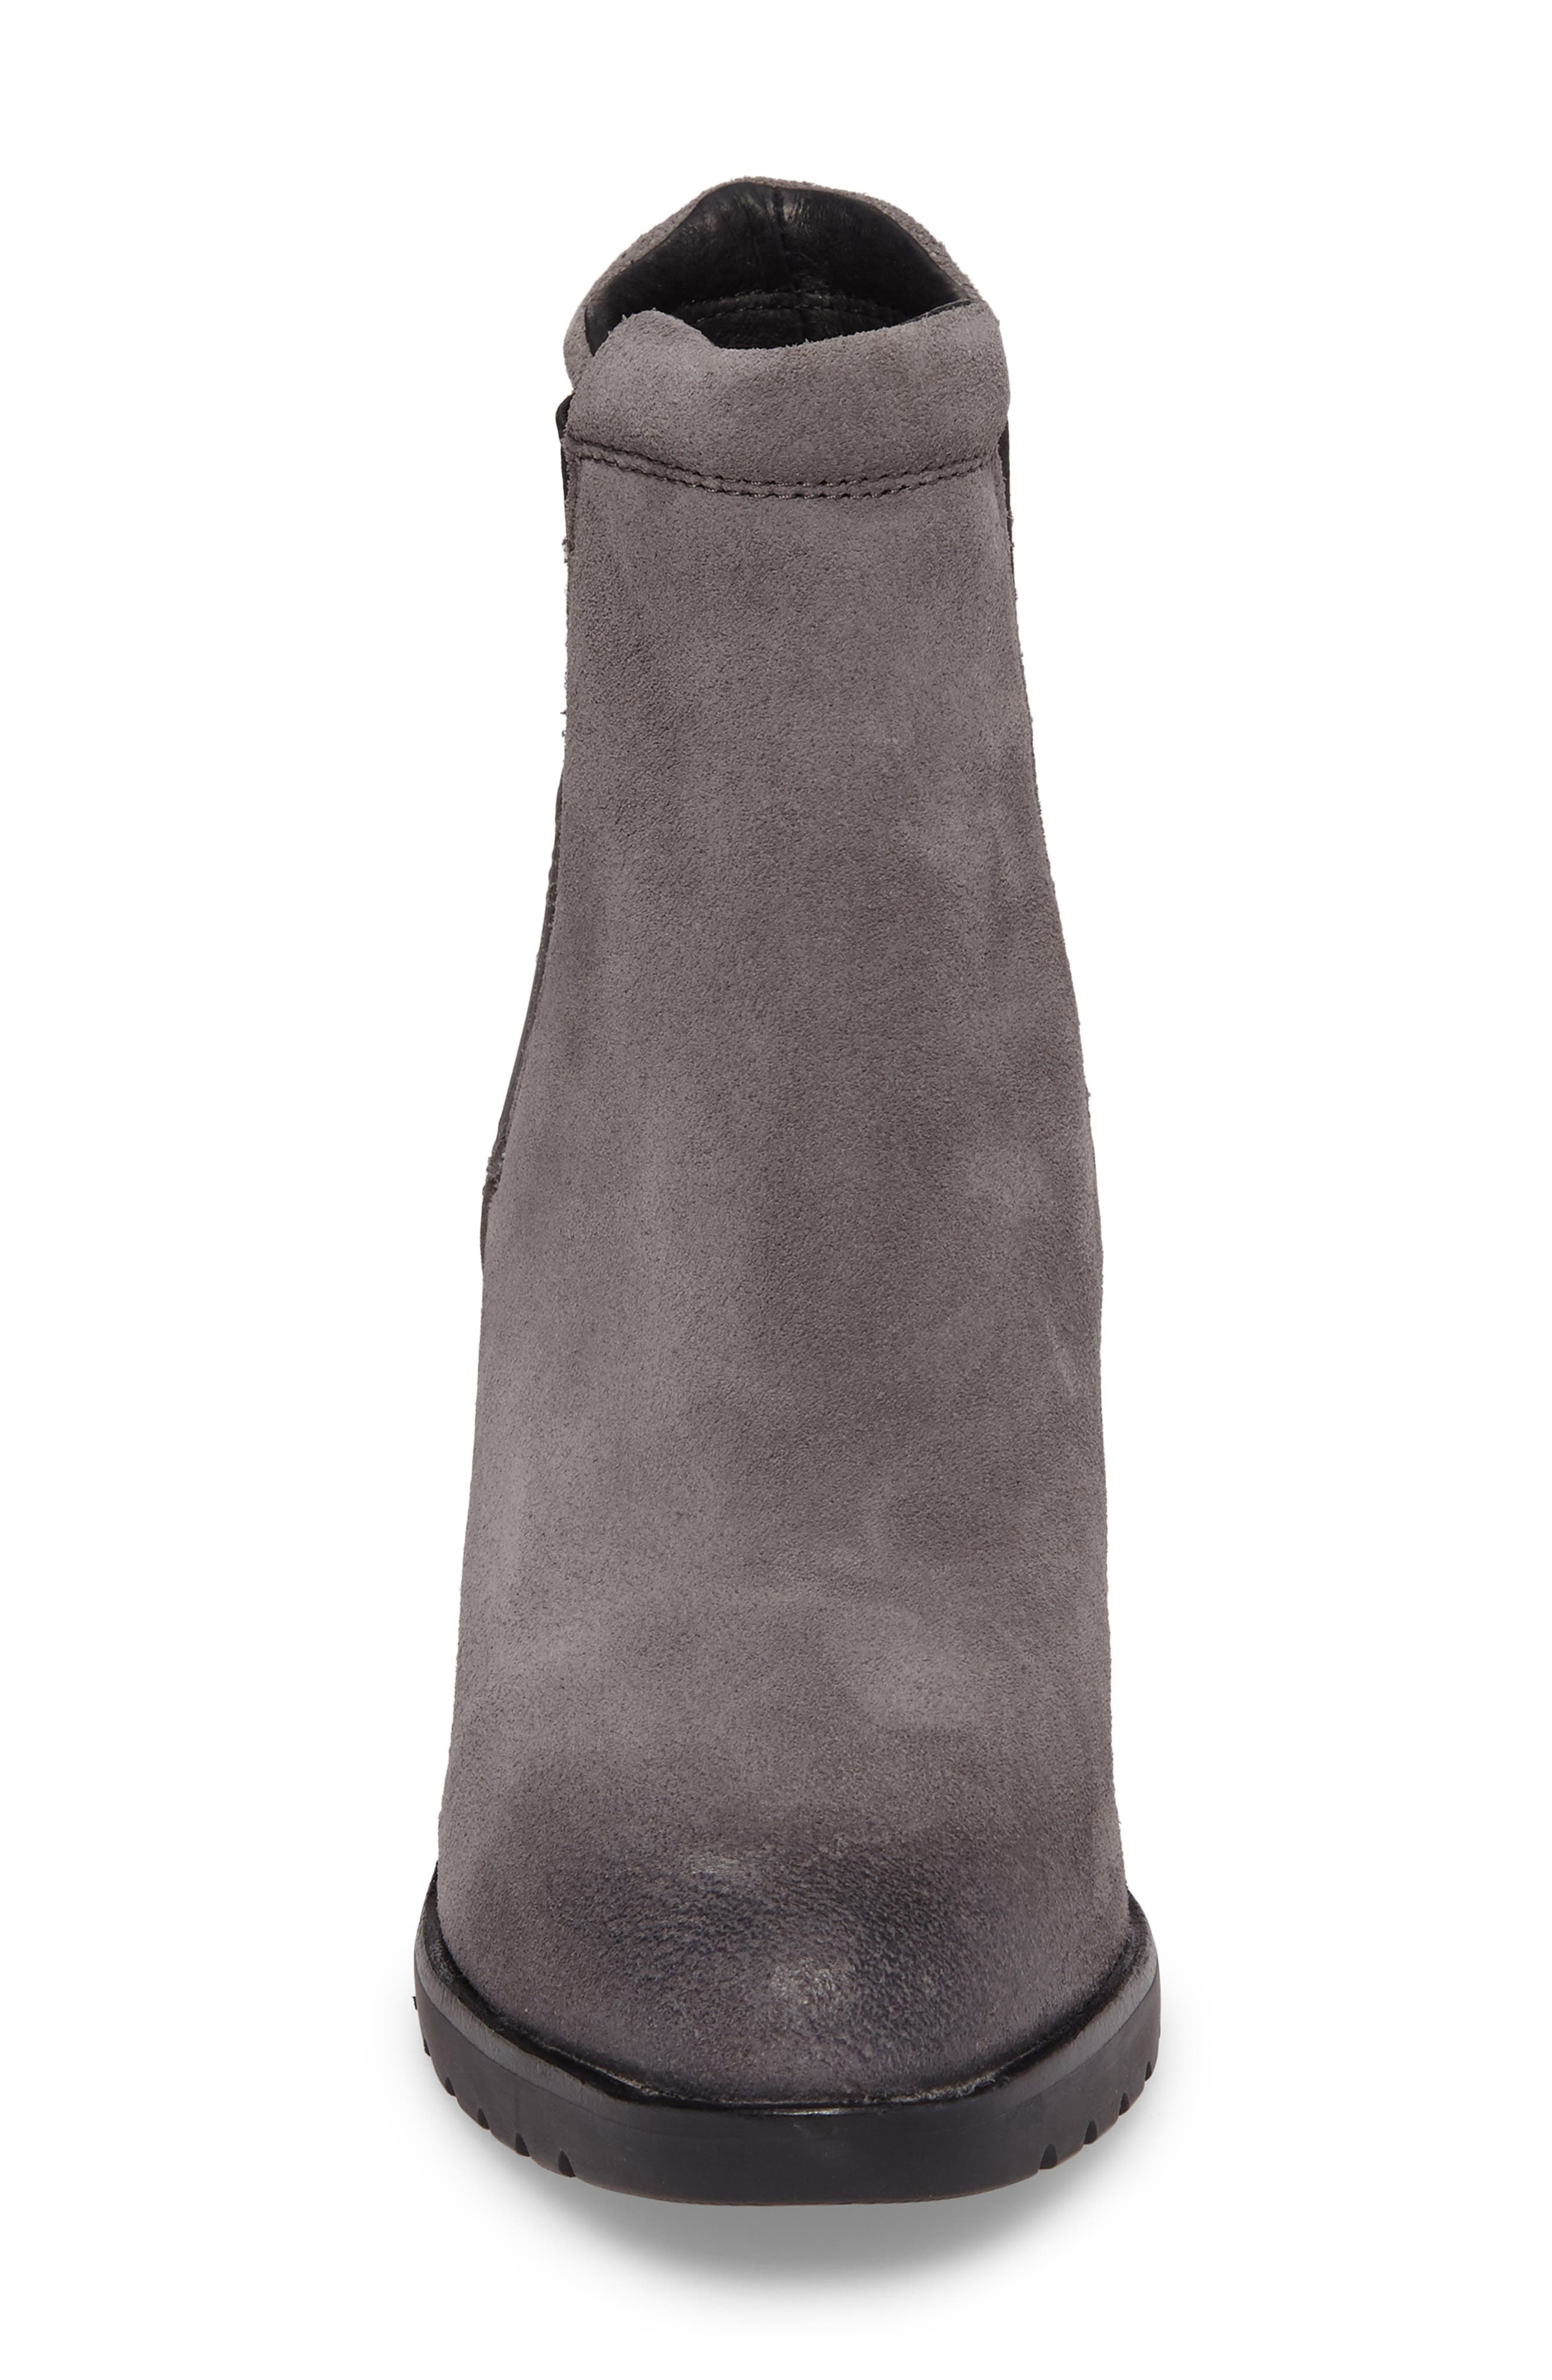 After Hours Chelsea Boot,                             Alternate thumbnail 18, color,